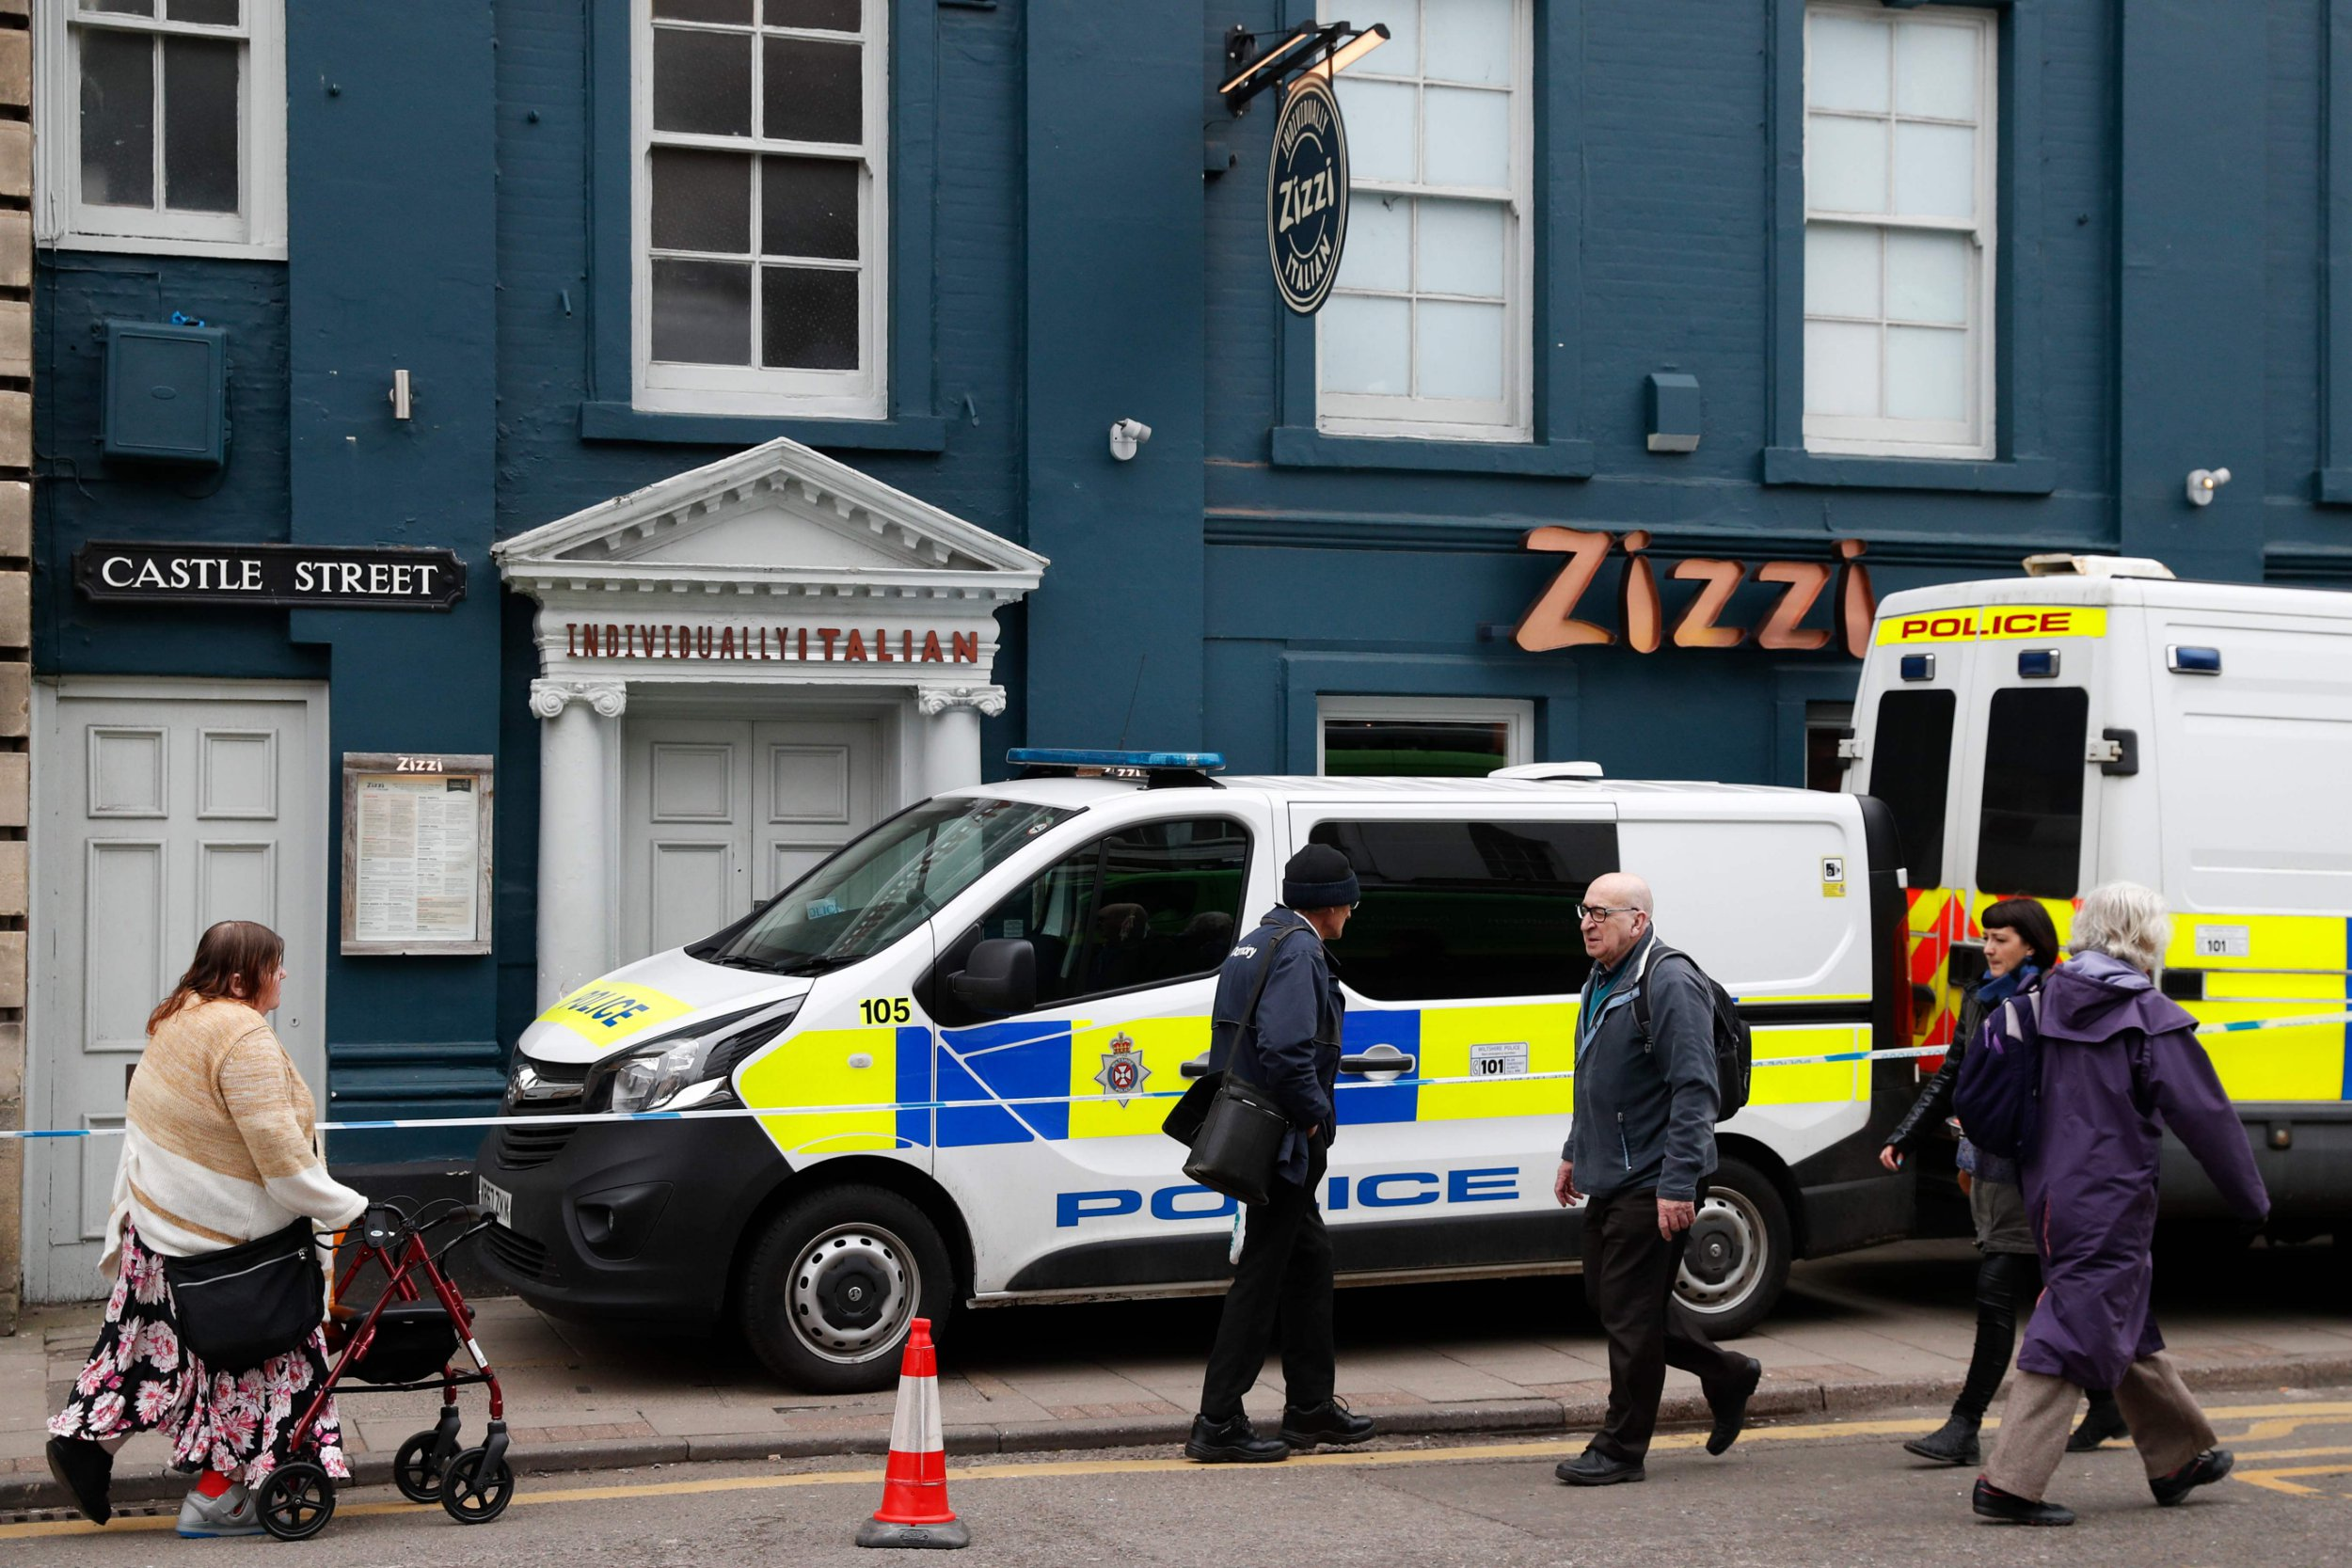 """Pedestrians walk past a cordoned-off branch of the Italian chain restaurant Zizzi close to The Maltings shopping centre in Salisbury, southern England, on March 8, 2018 which was closed in connection to the ongoing major incident sparked after a man and a woman were found critically ill on a bench at the shopping centre on March 4 after being apparently poisoned with what was later identified as a nerve agent sparking a major incident. Britain vowed on March 8 to act """"without hesitation"""" if a state is found responsible for a nerve agent attack on a former Russian double agent, as police said 21 people in total had received medical treatment following the incident. Sergei Skripal and his daughter Yulia remain unconscious in a critical but stable condition following the attack on Sunday in the sleepy south-western English city of Salisbury. / AFP PHOTO / Adrian DENNISADRIAN DENNIS/AFP/Getty Images"""